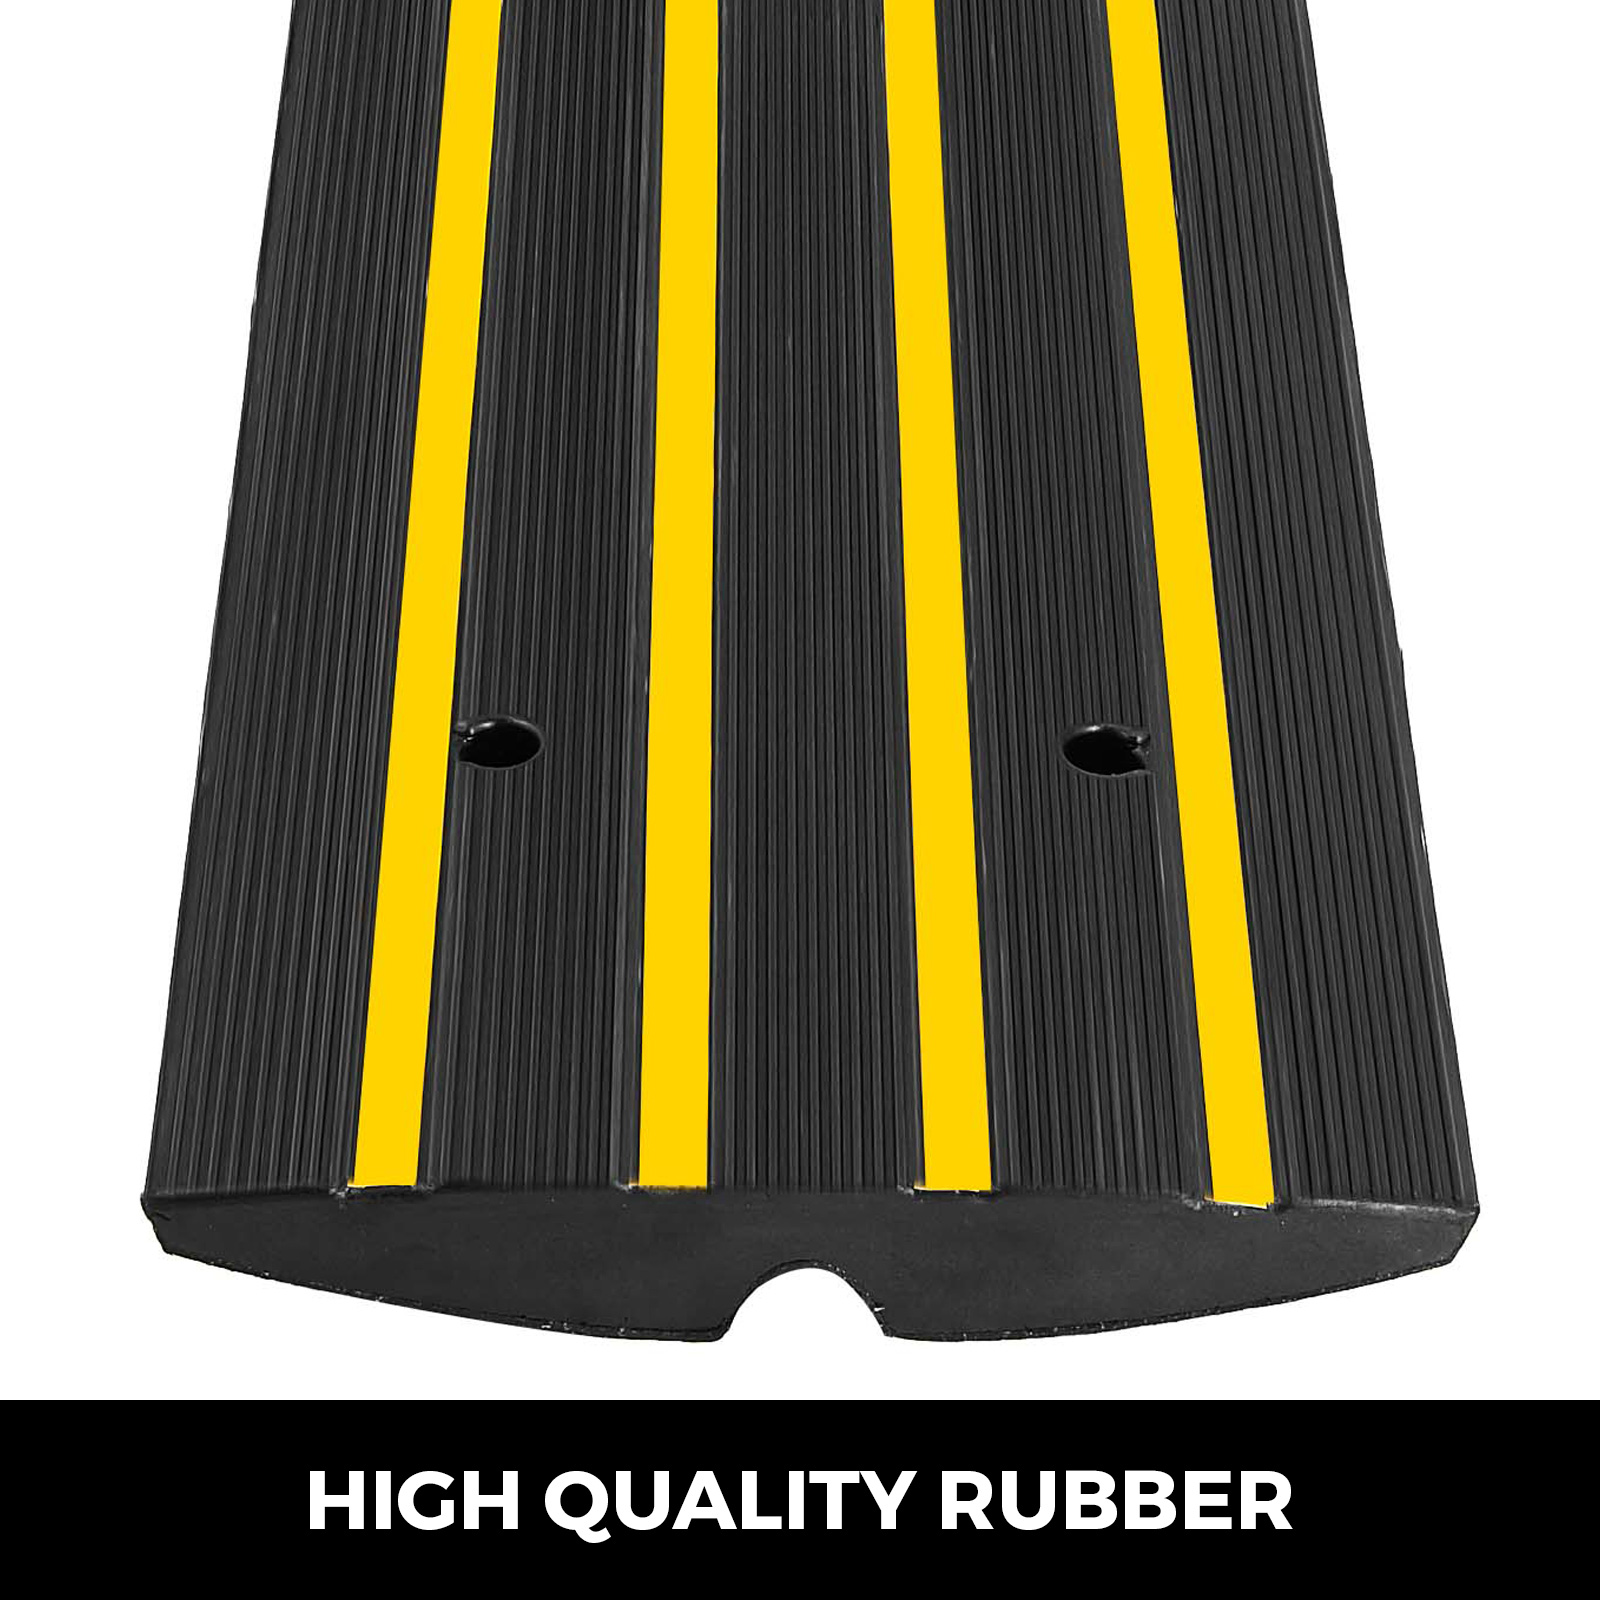 Rubber Slow Down Device Multifunction Slope Buffer Zone Highway Dedicated 100 35 4CM DJSMxpd Curb Ramps Road Retarder